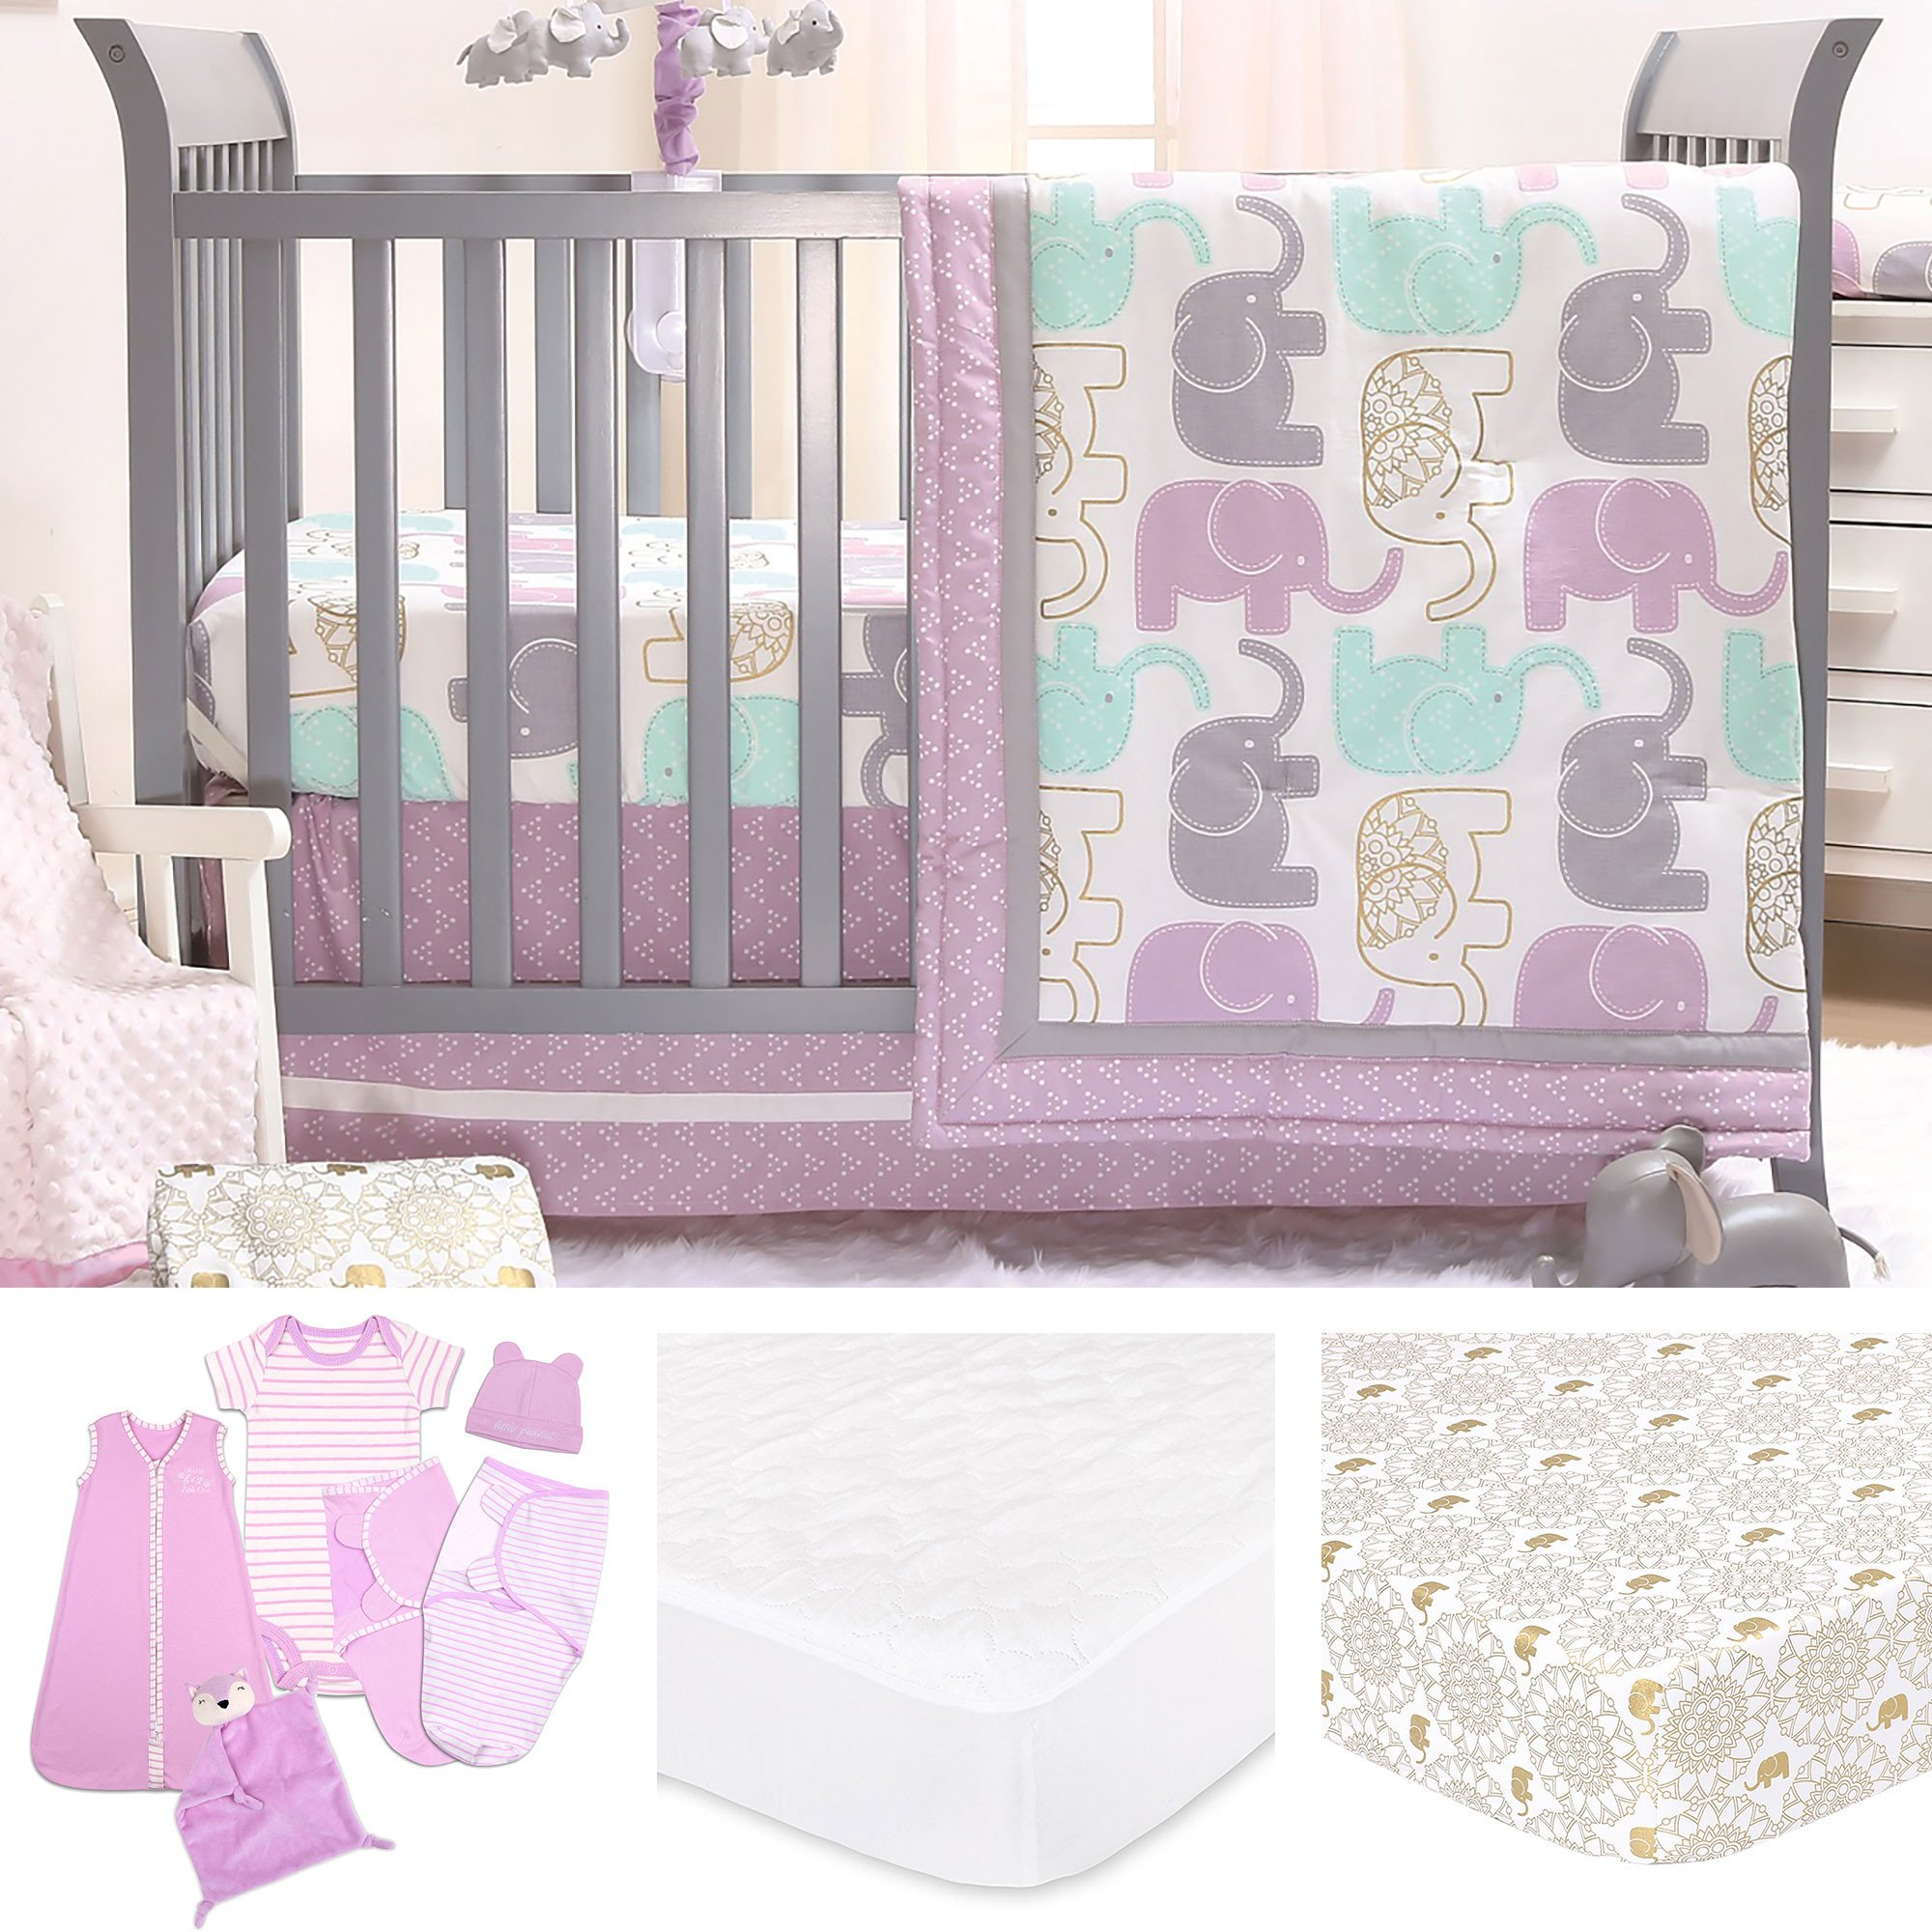 Little Mermaid Bedroom Set Unique Little Peanut Lilac Gold Elephant Baby Girl Crib Bedding